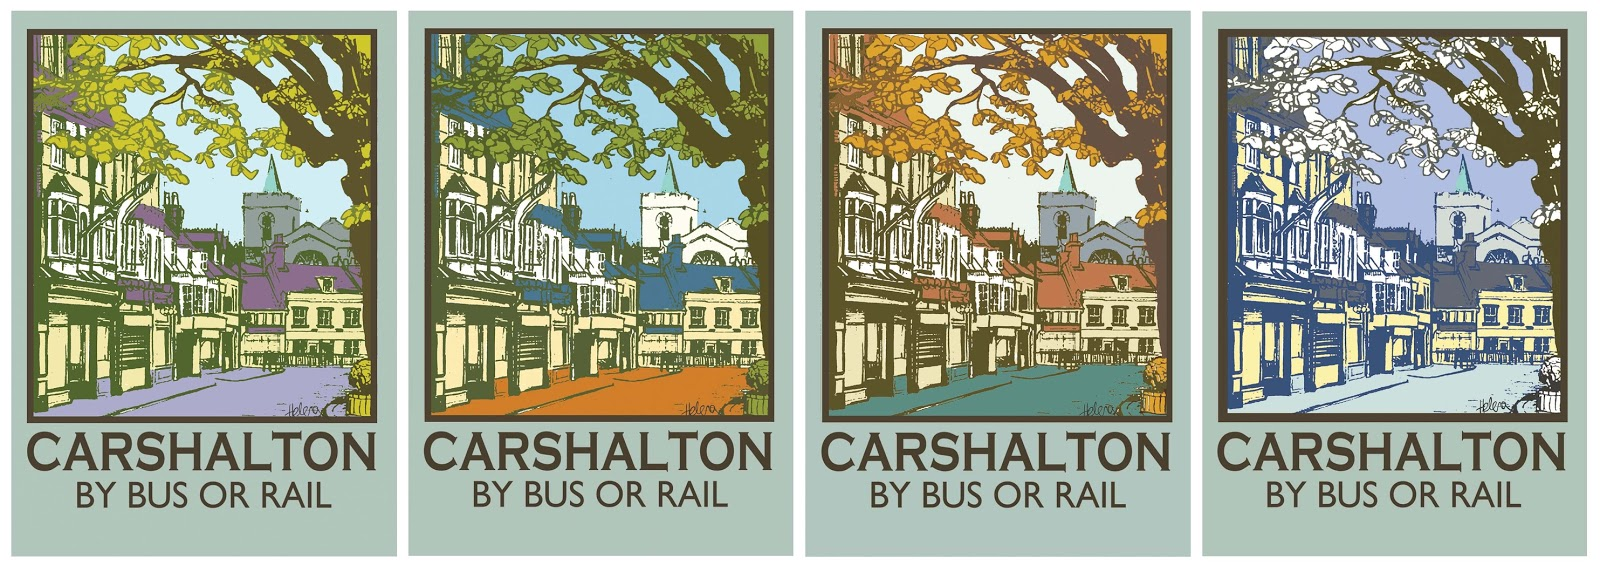 Helena's 'Carshalton by Bus or Rail' prints, cards and postcards are available to buy at Calladoodles.